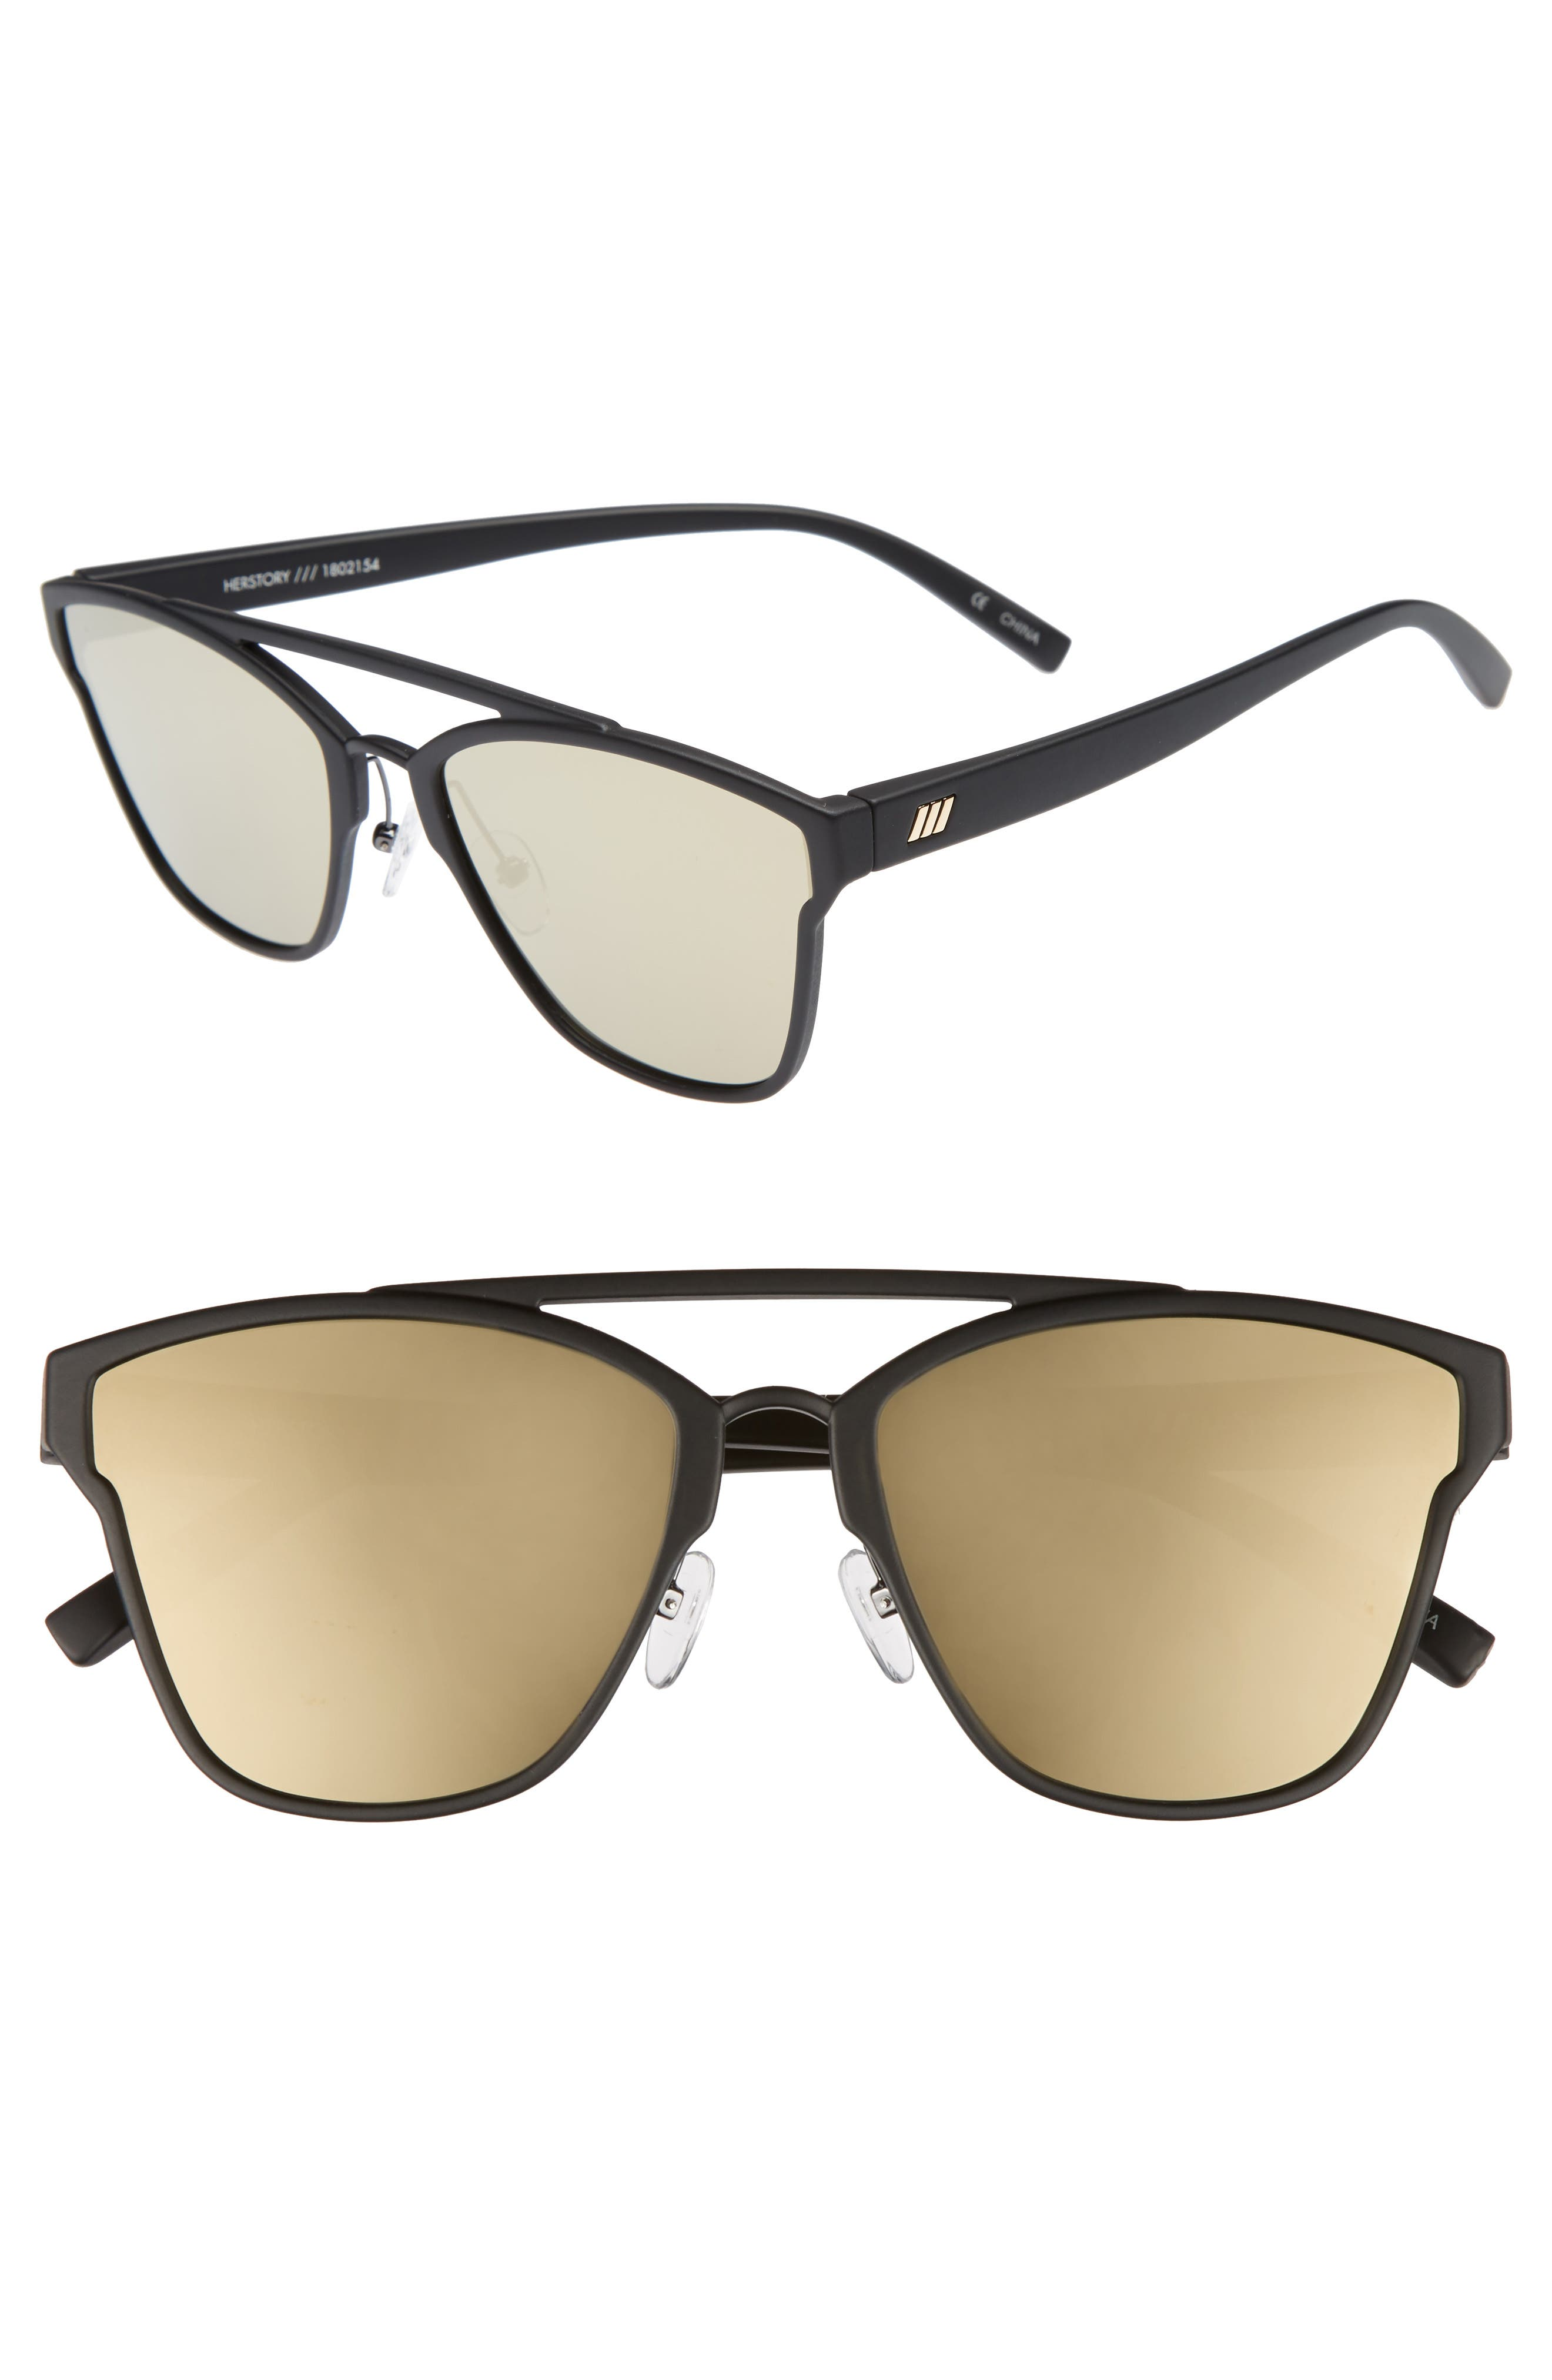 LE SPECS Herstory 55mm Aviator Sunglasses, Main, color, 001